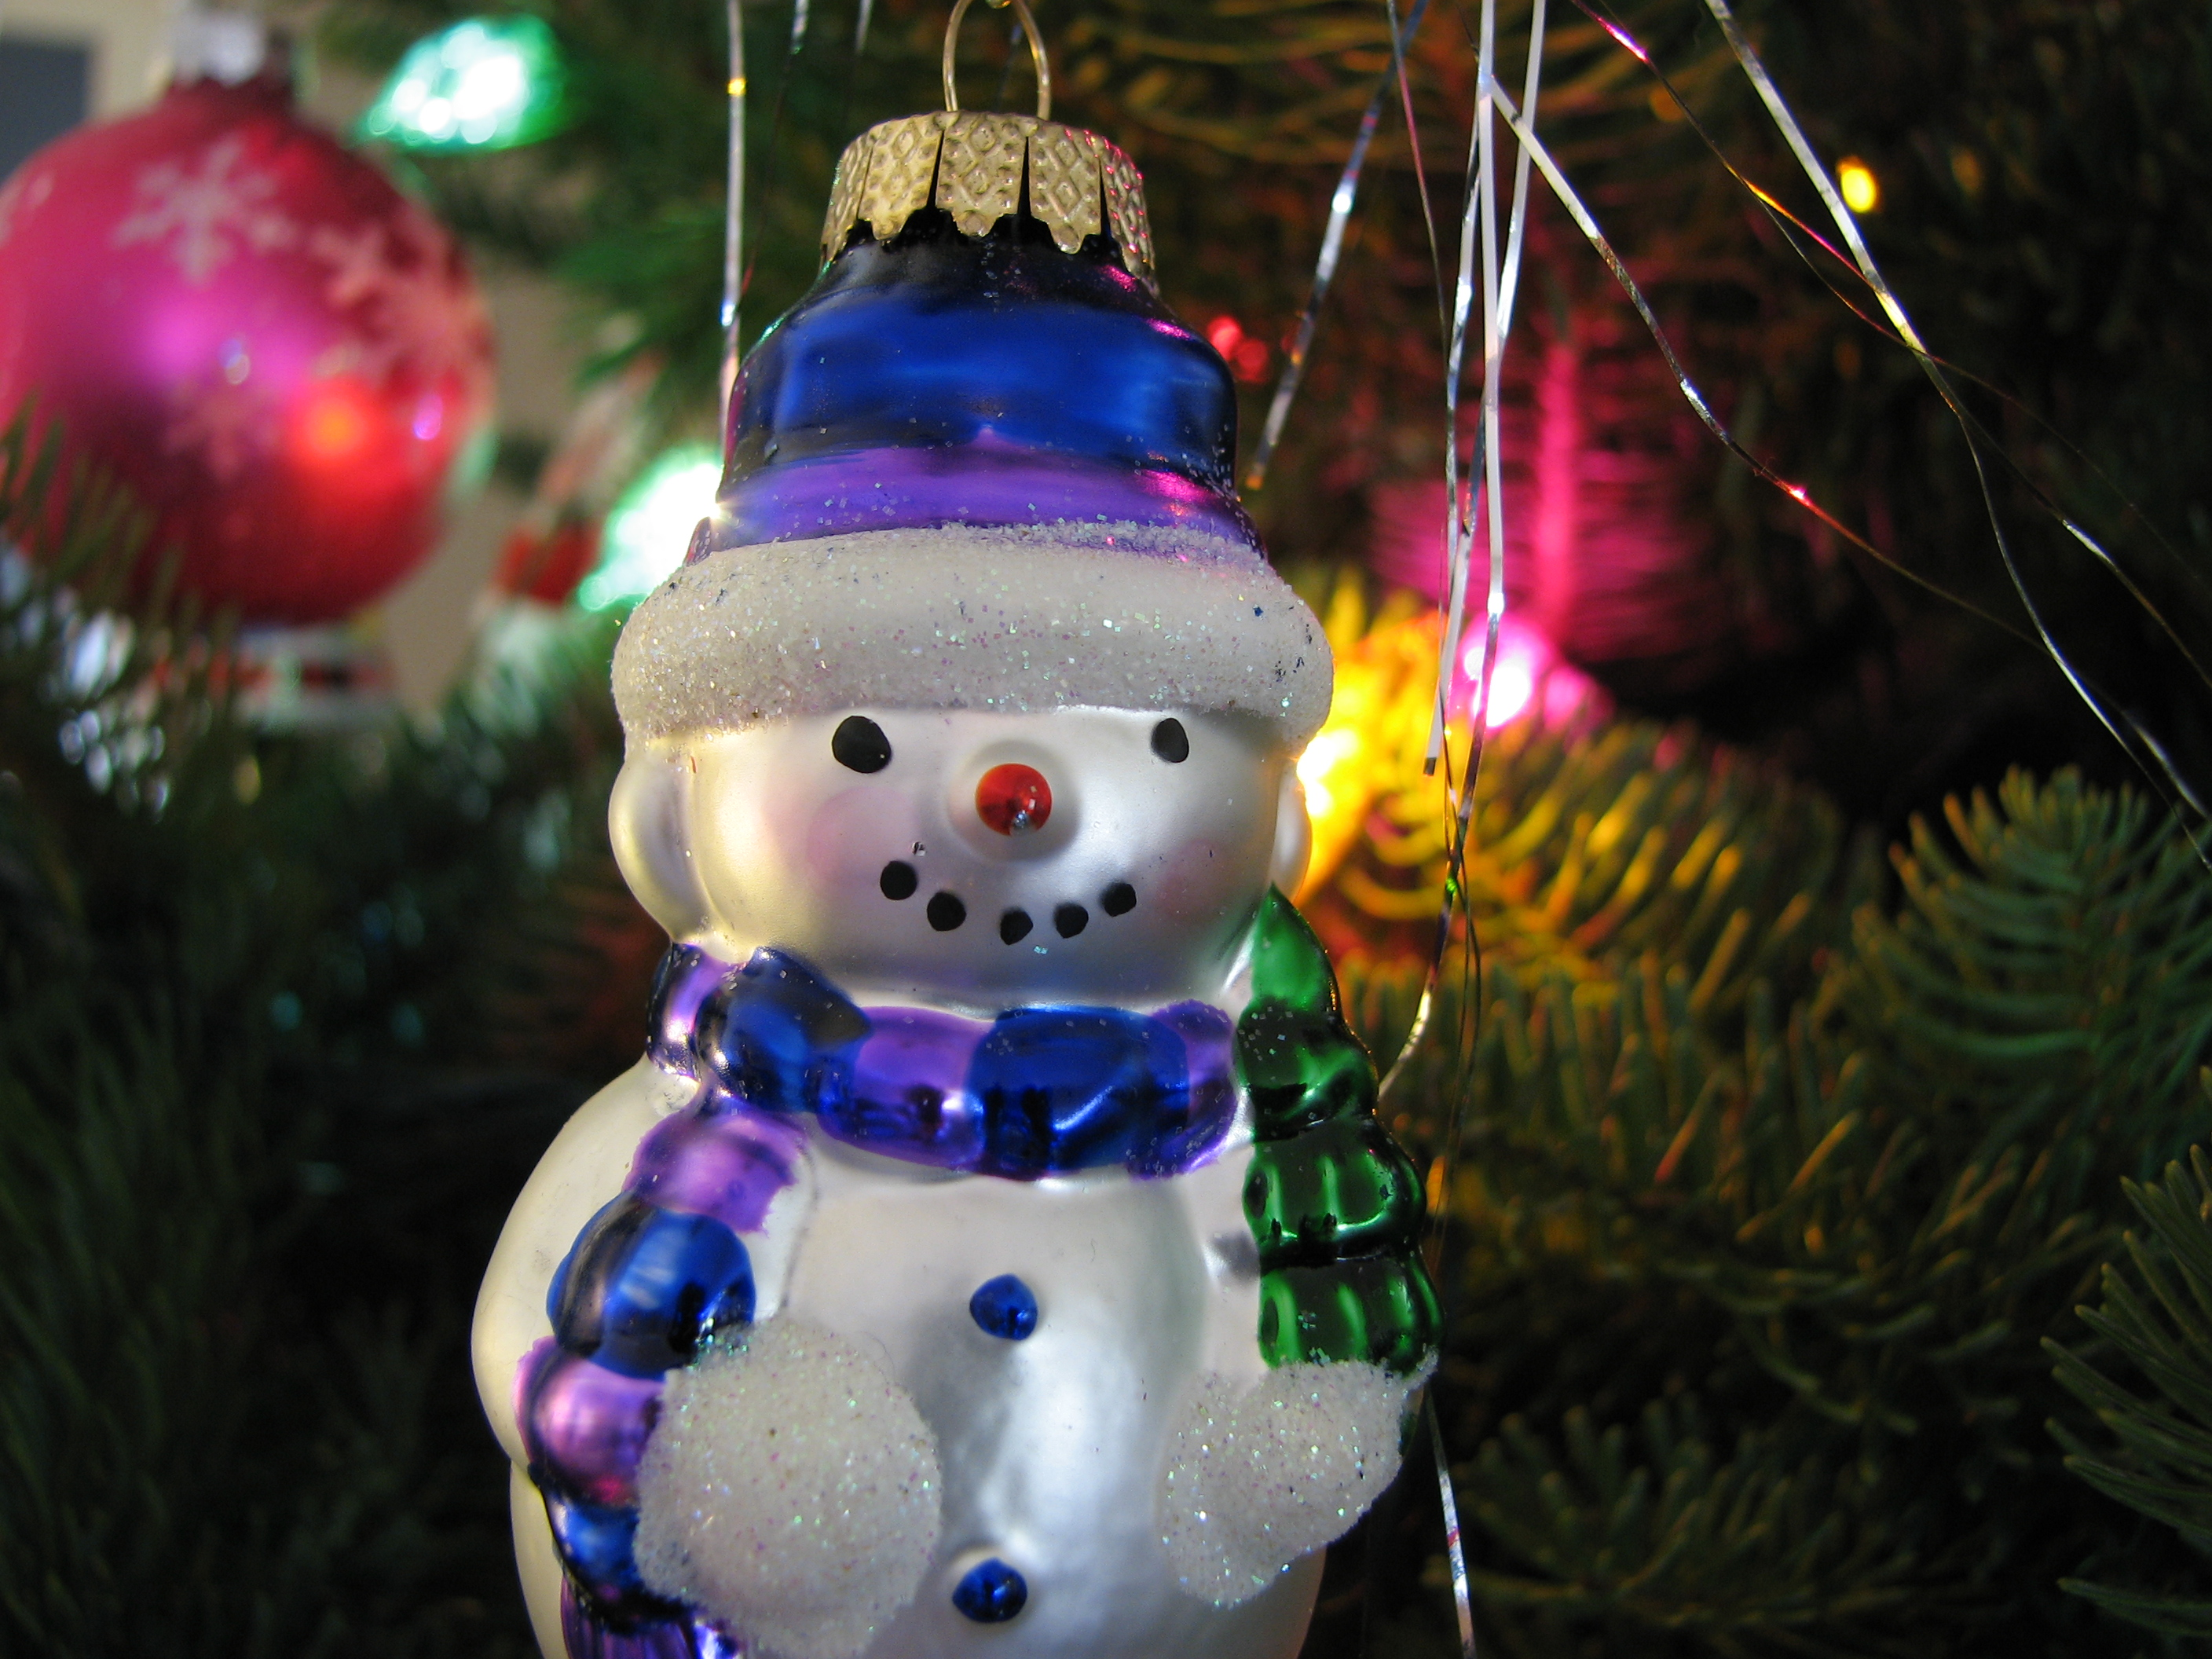 filechristmas ornament snowman lightsjpg - Snowman Christmas Tree Decorations